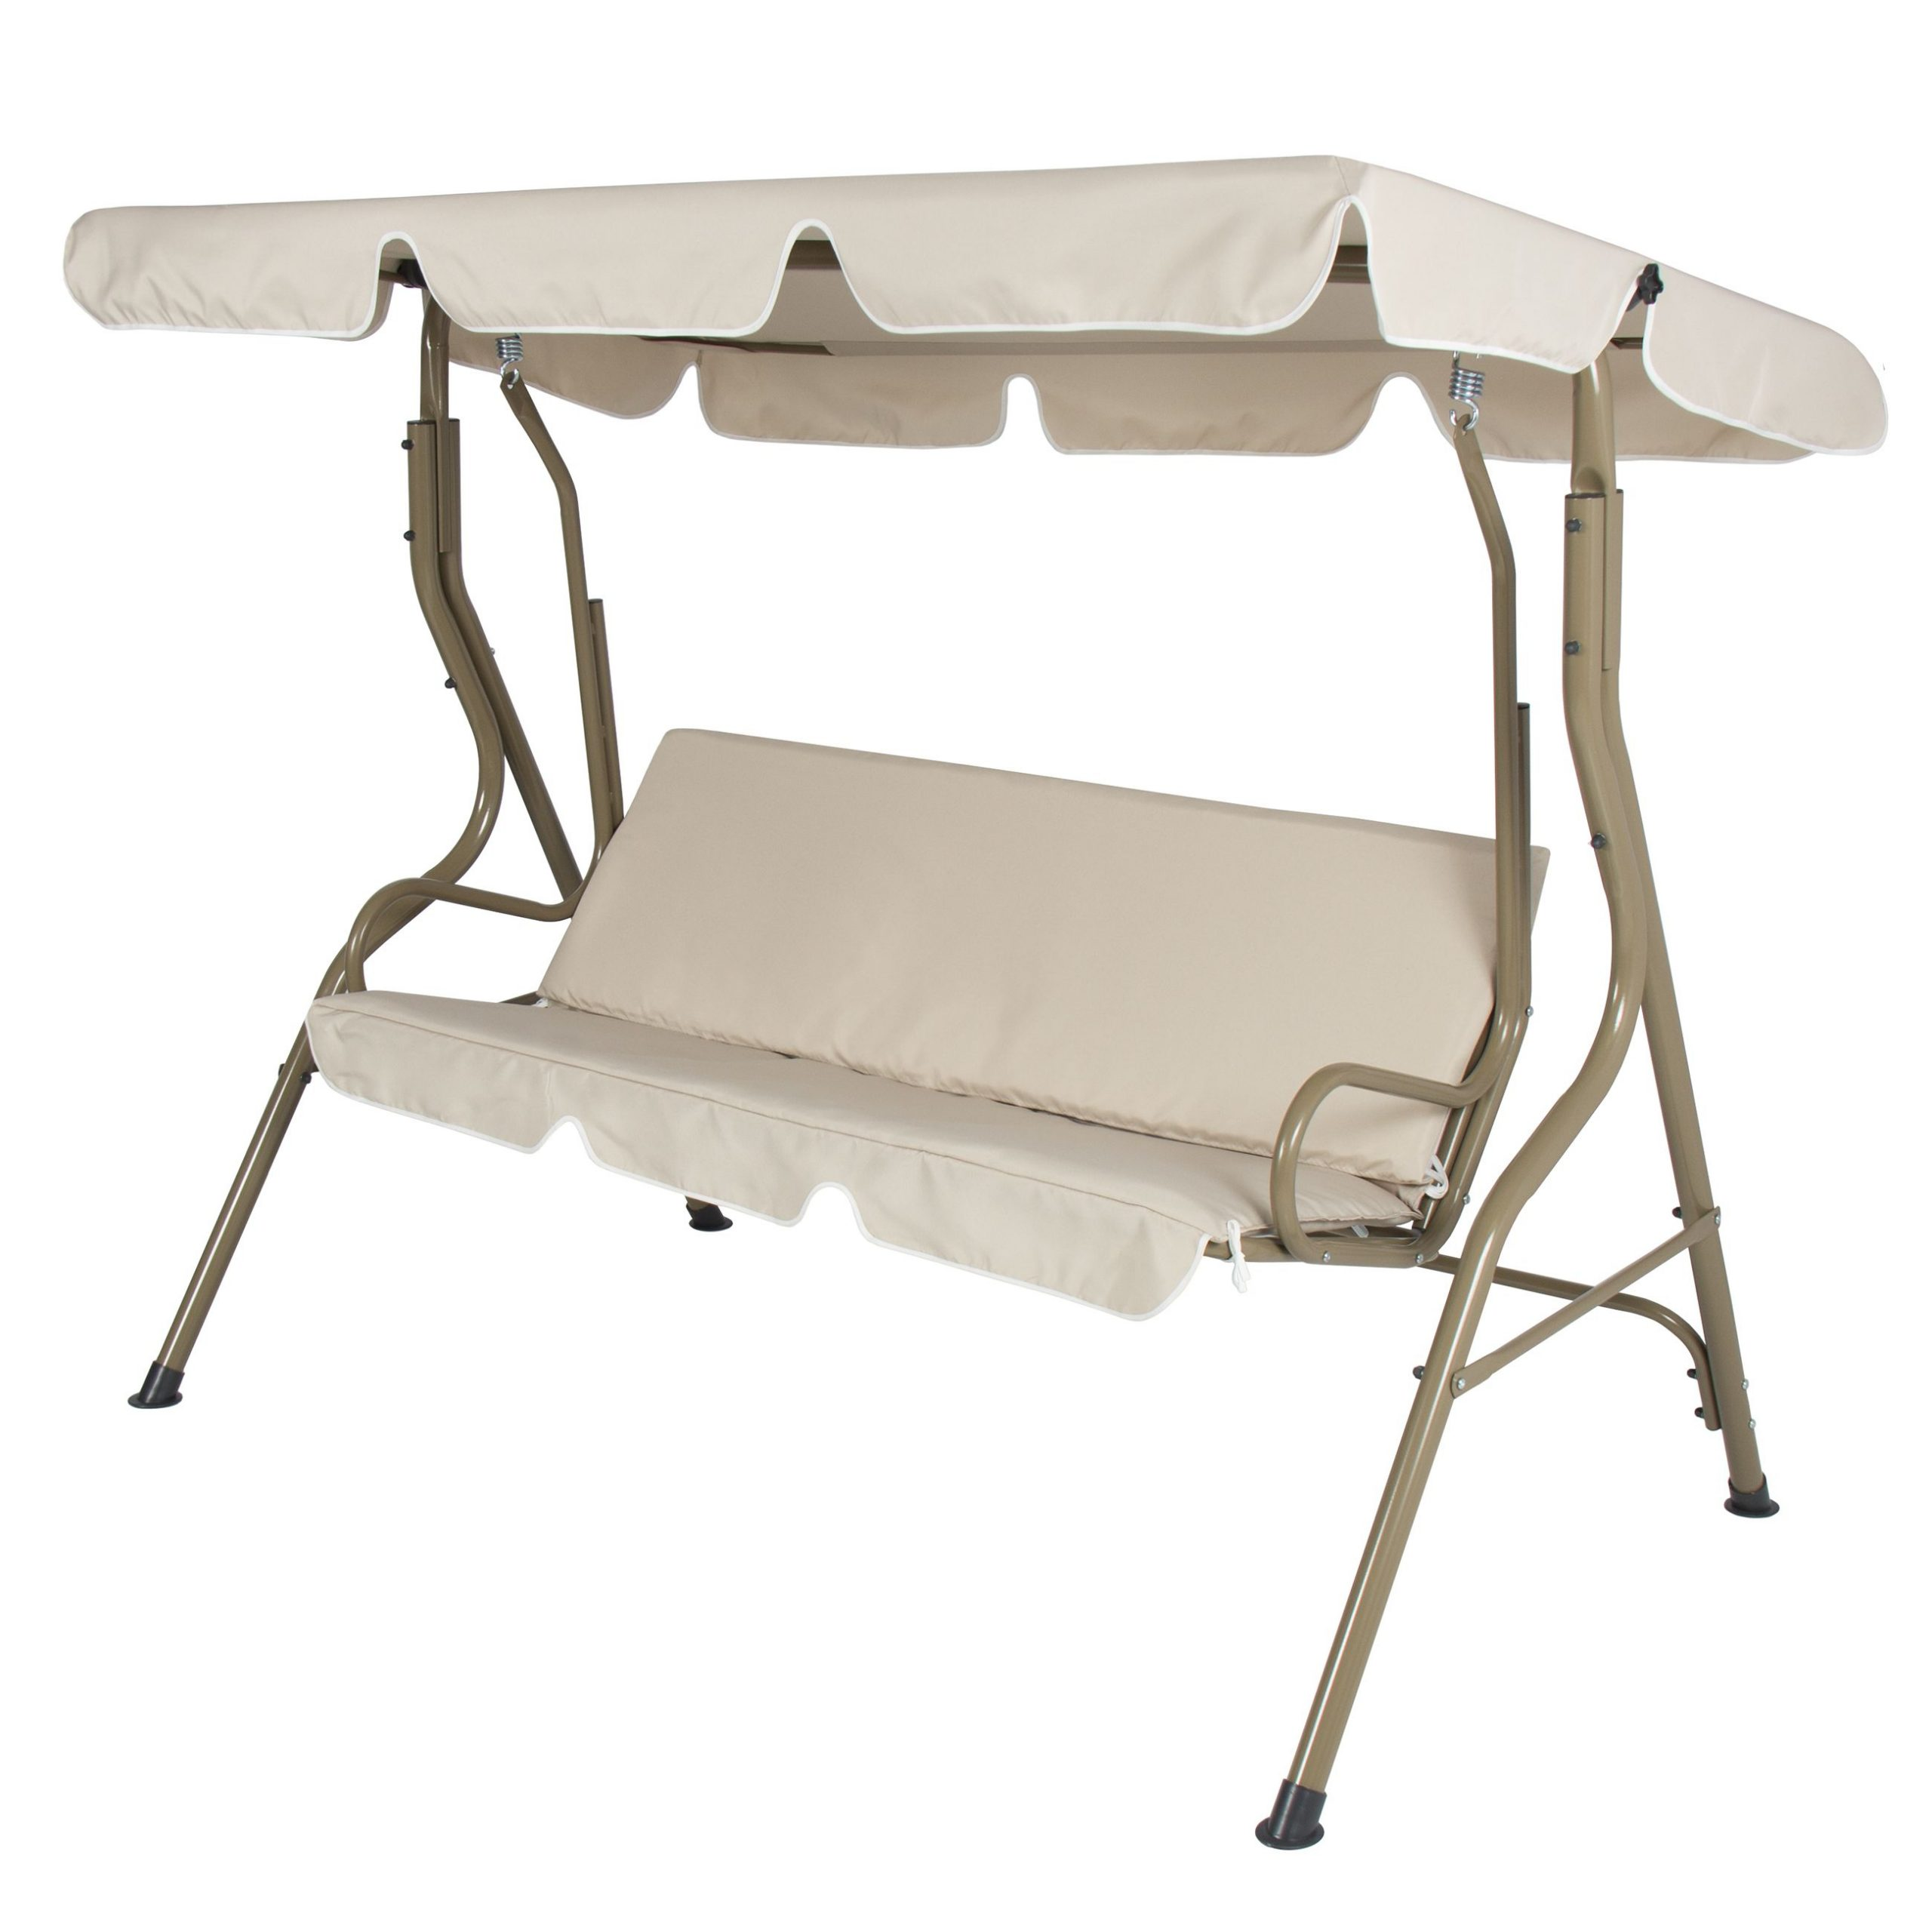 Favorite 2 Person Outdoor Convertible Canopy Swing Gliders With Removable Cushions Beige With Best Choice Products 2 Person Outdoor Large Convertible (Gallery 2 of 30)